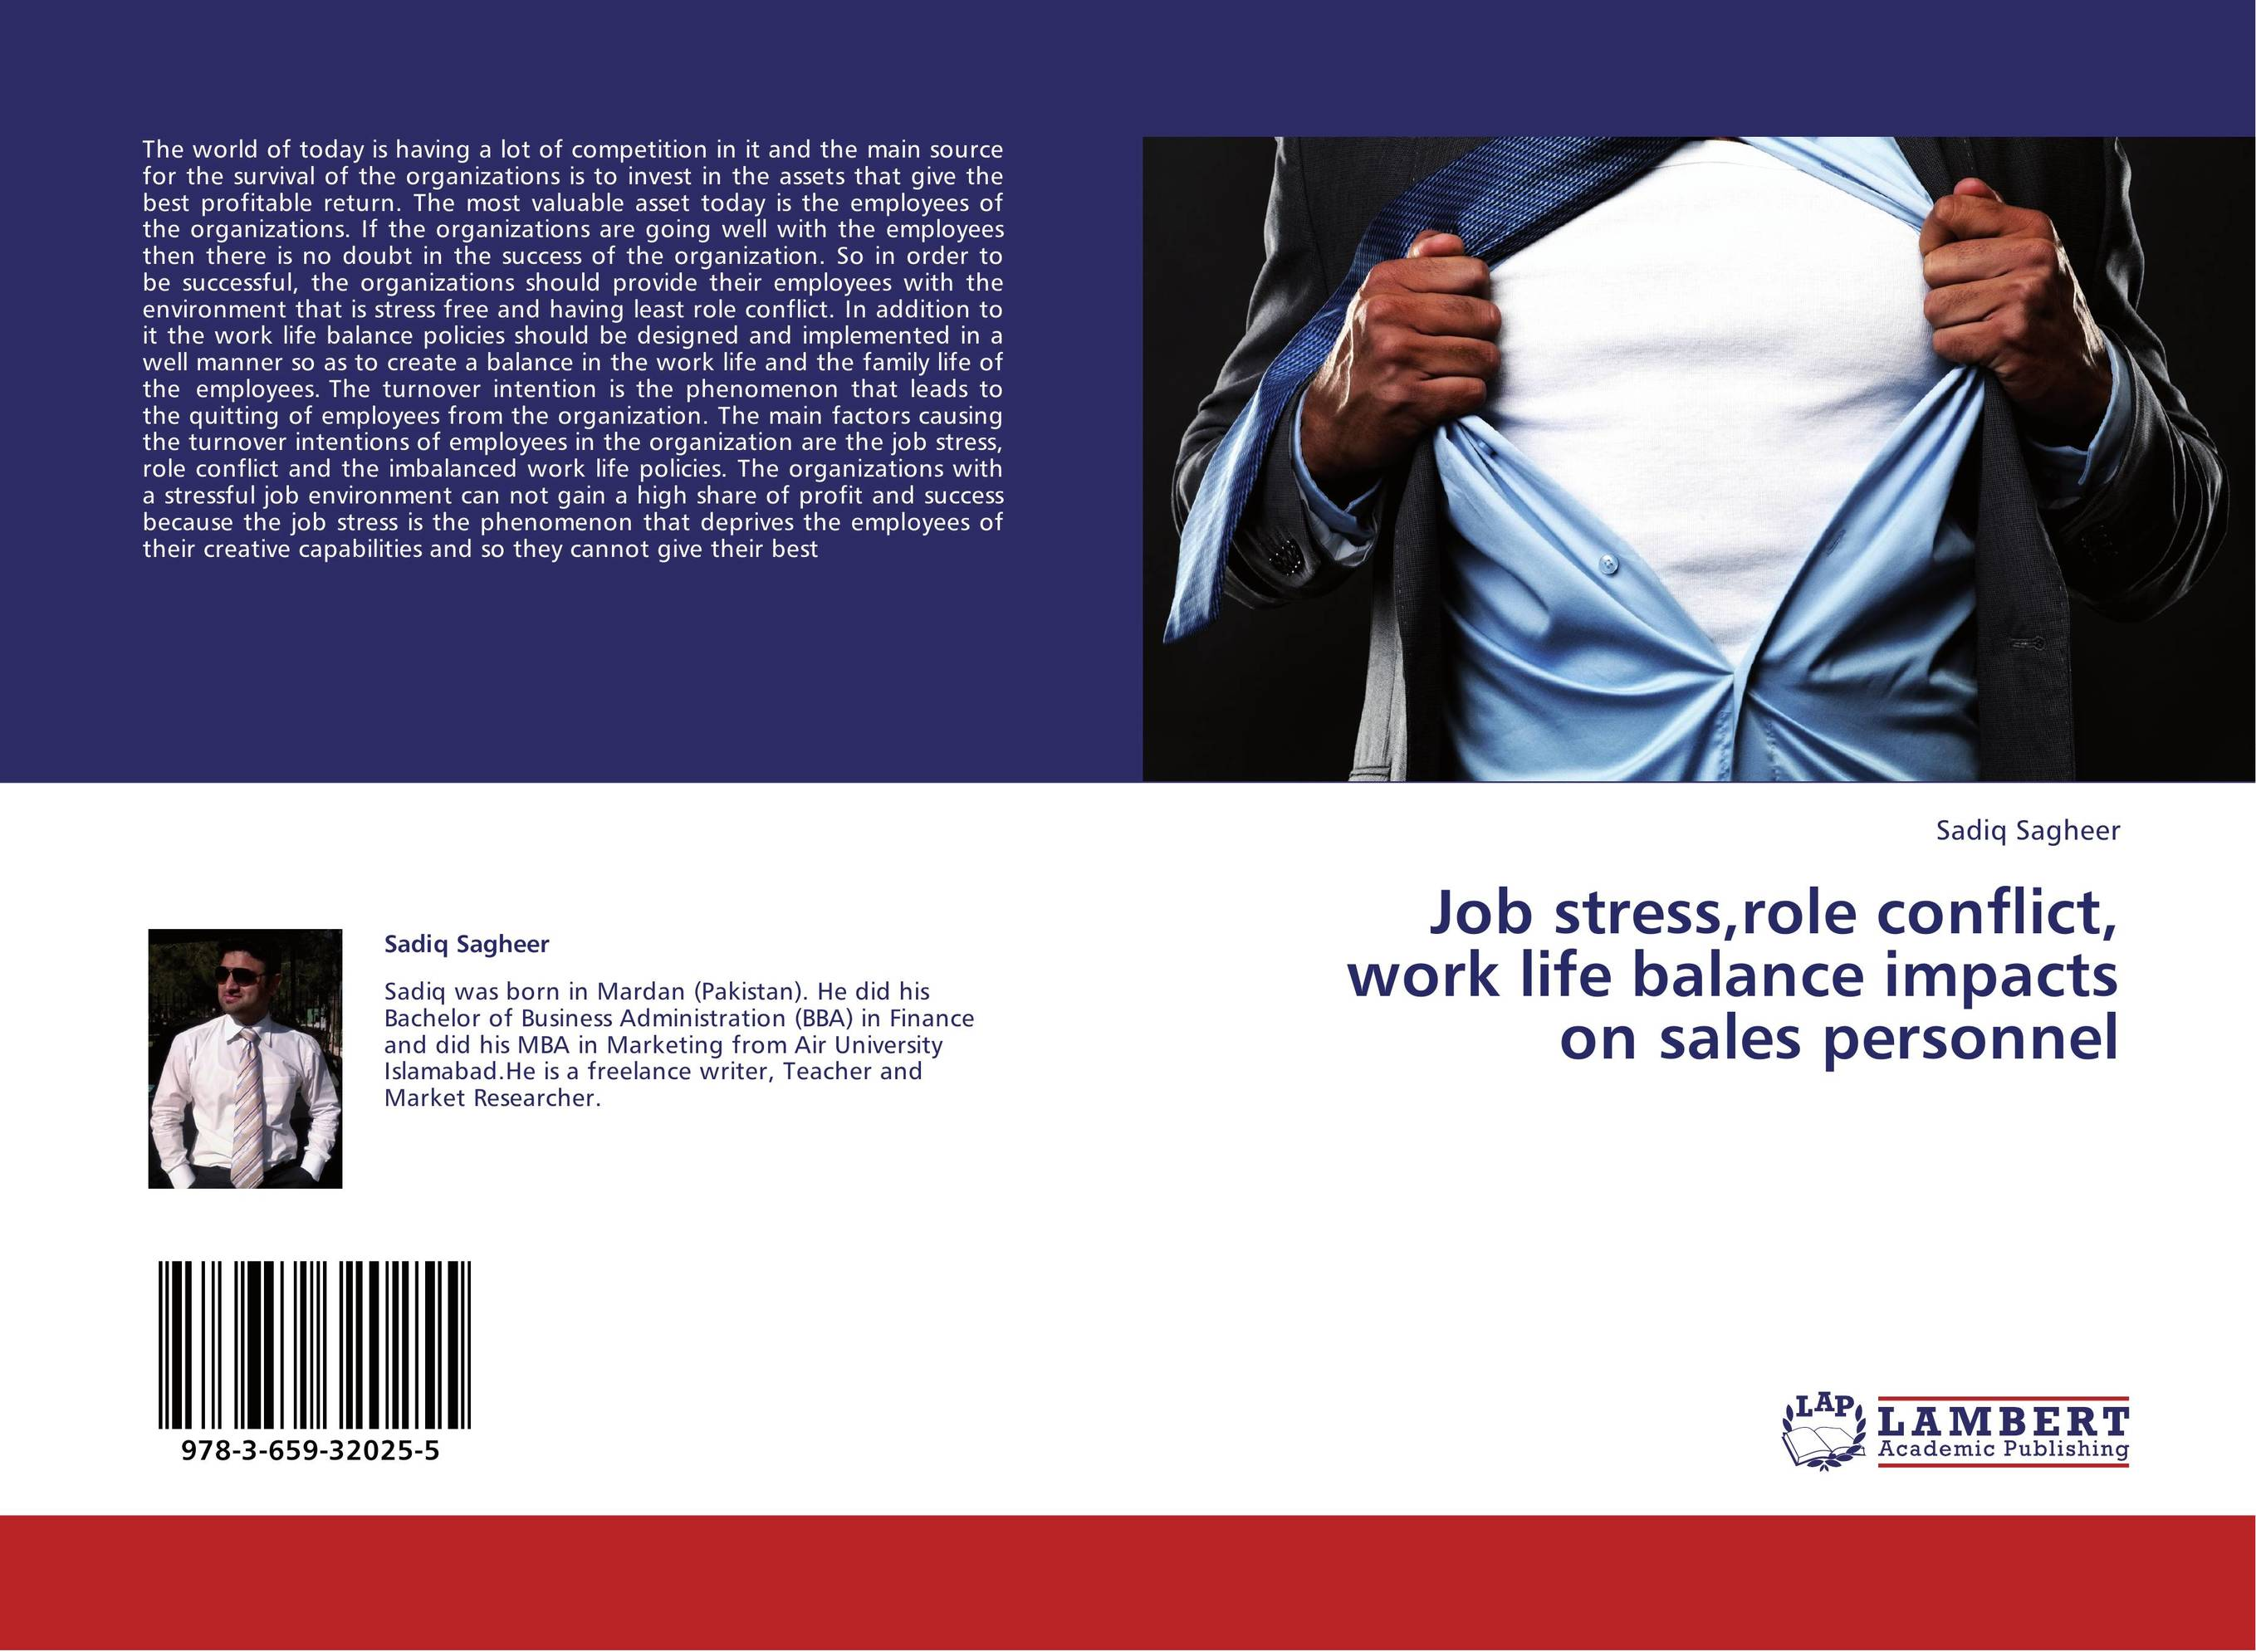 thesis on work stress and job satisfaction Employee perceptions of co-worker support and its effect on job satisfaction, work stress and intention to quit a dissertation submitted in partial fulfilment of the.